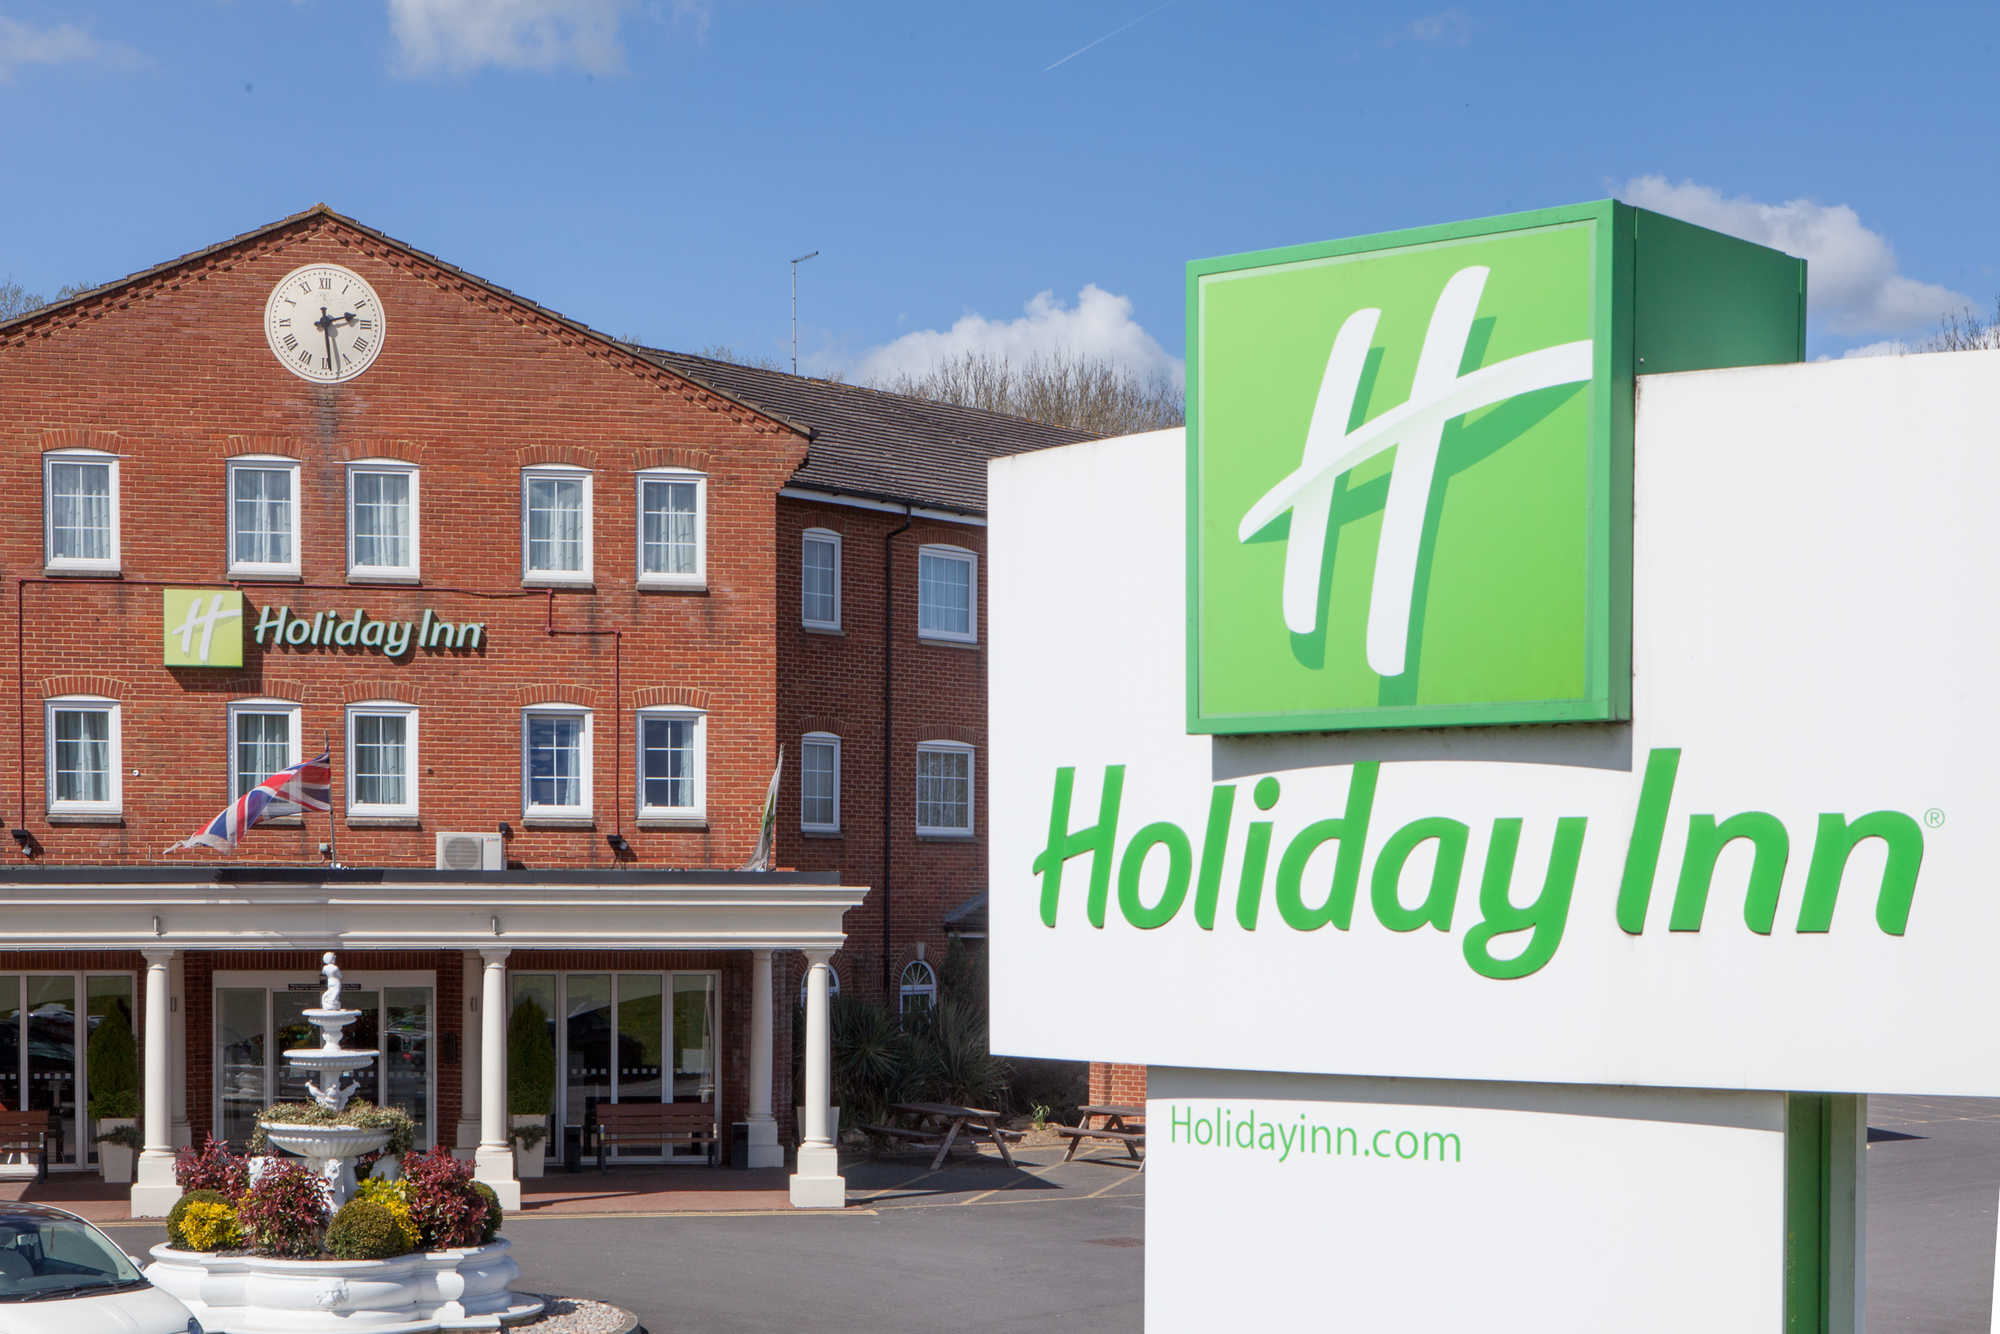 holiday inn corbykettering wedding venues in